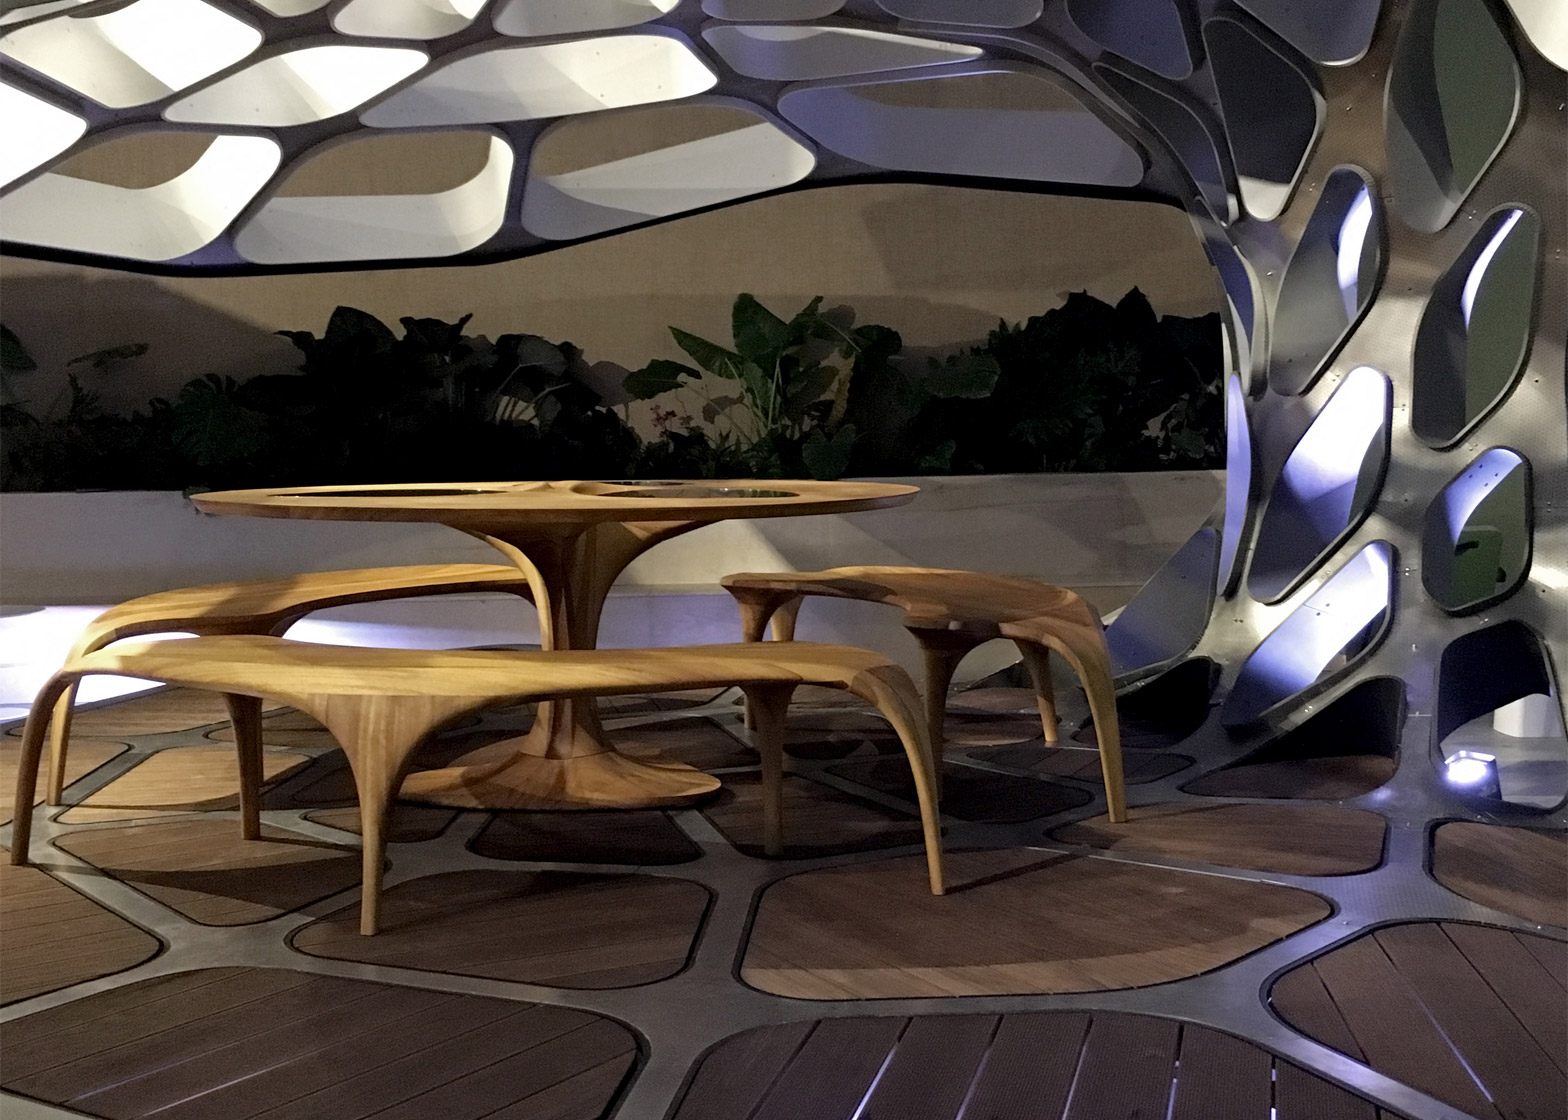 Dining pavilion by Zaha Hadid and Patrik Schumacher at Design Miami 2015